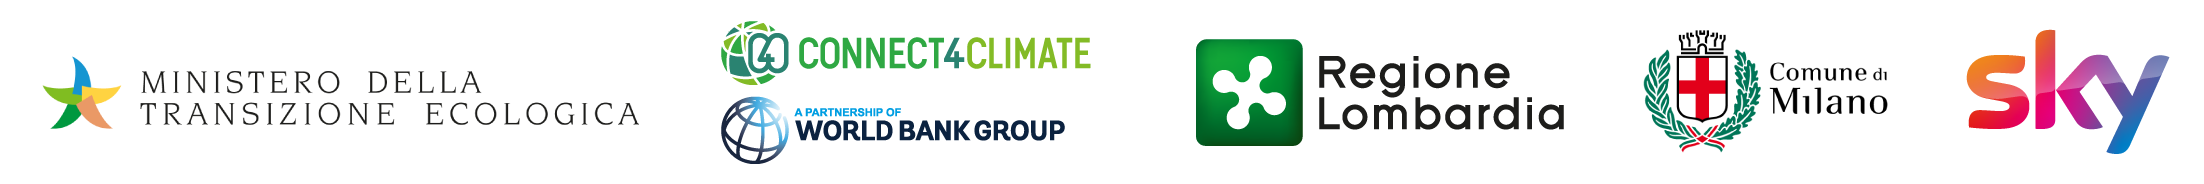 All4Climate Italy 2021 Partners logos